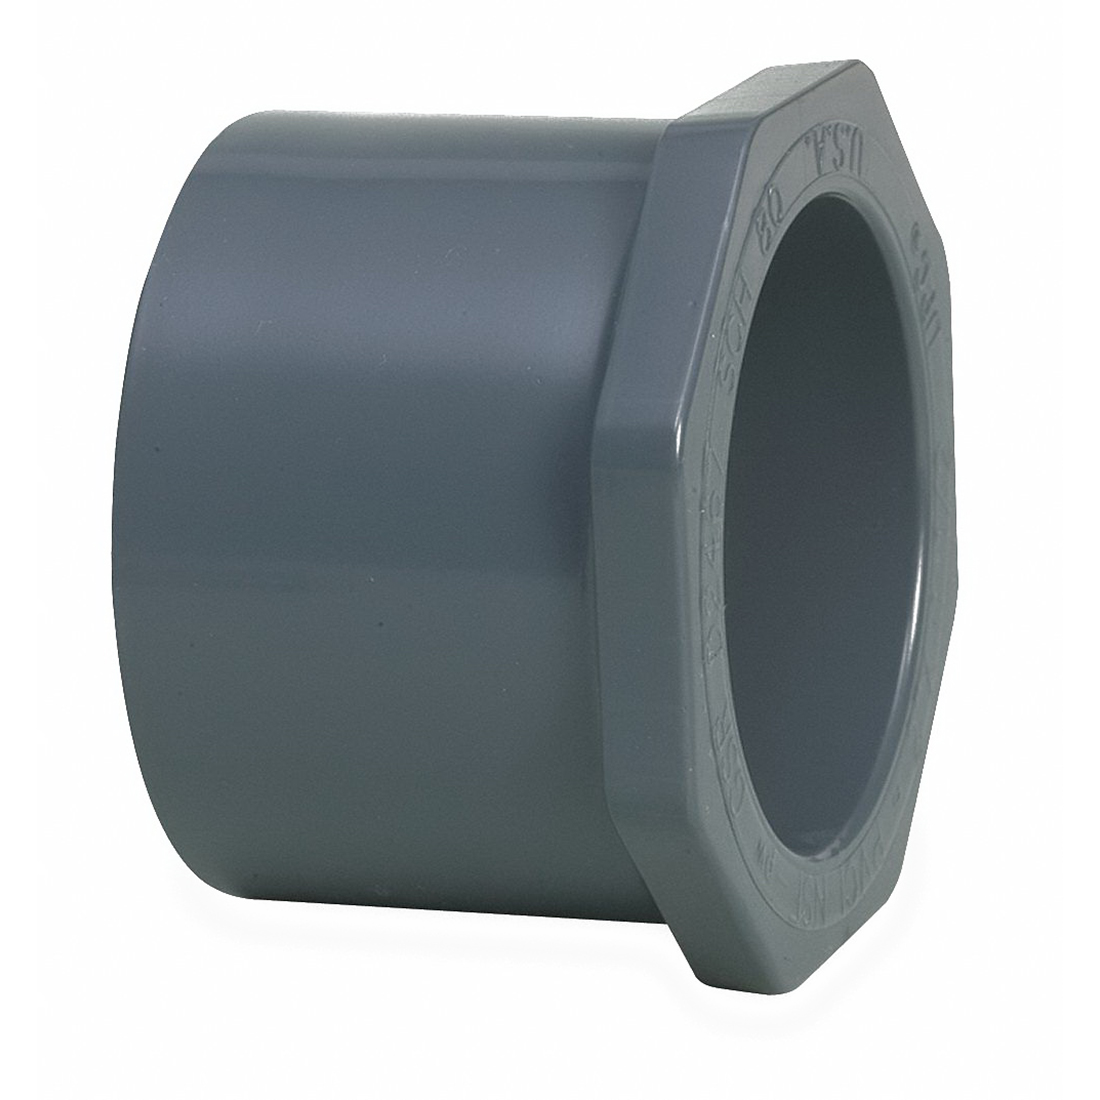 Gray PVC SCH 80 Flush Style Reducer Bushing, 2-1/2 in x 2 in, Spigot x Socket